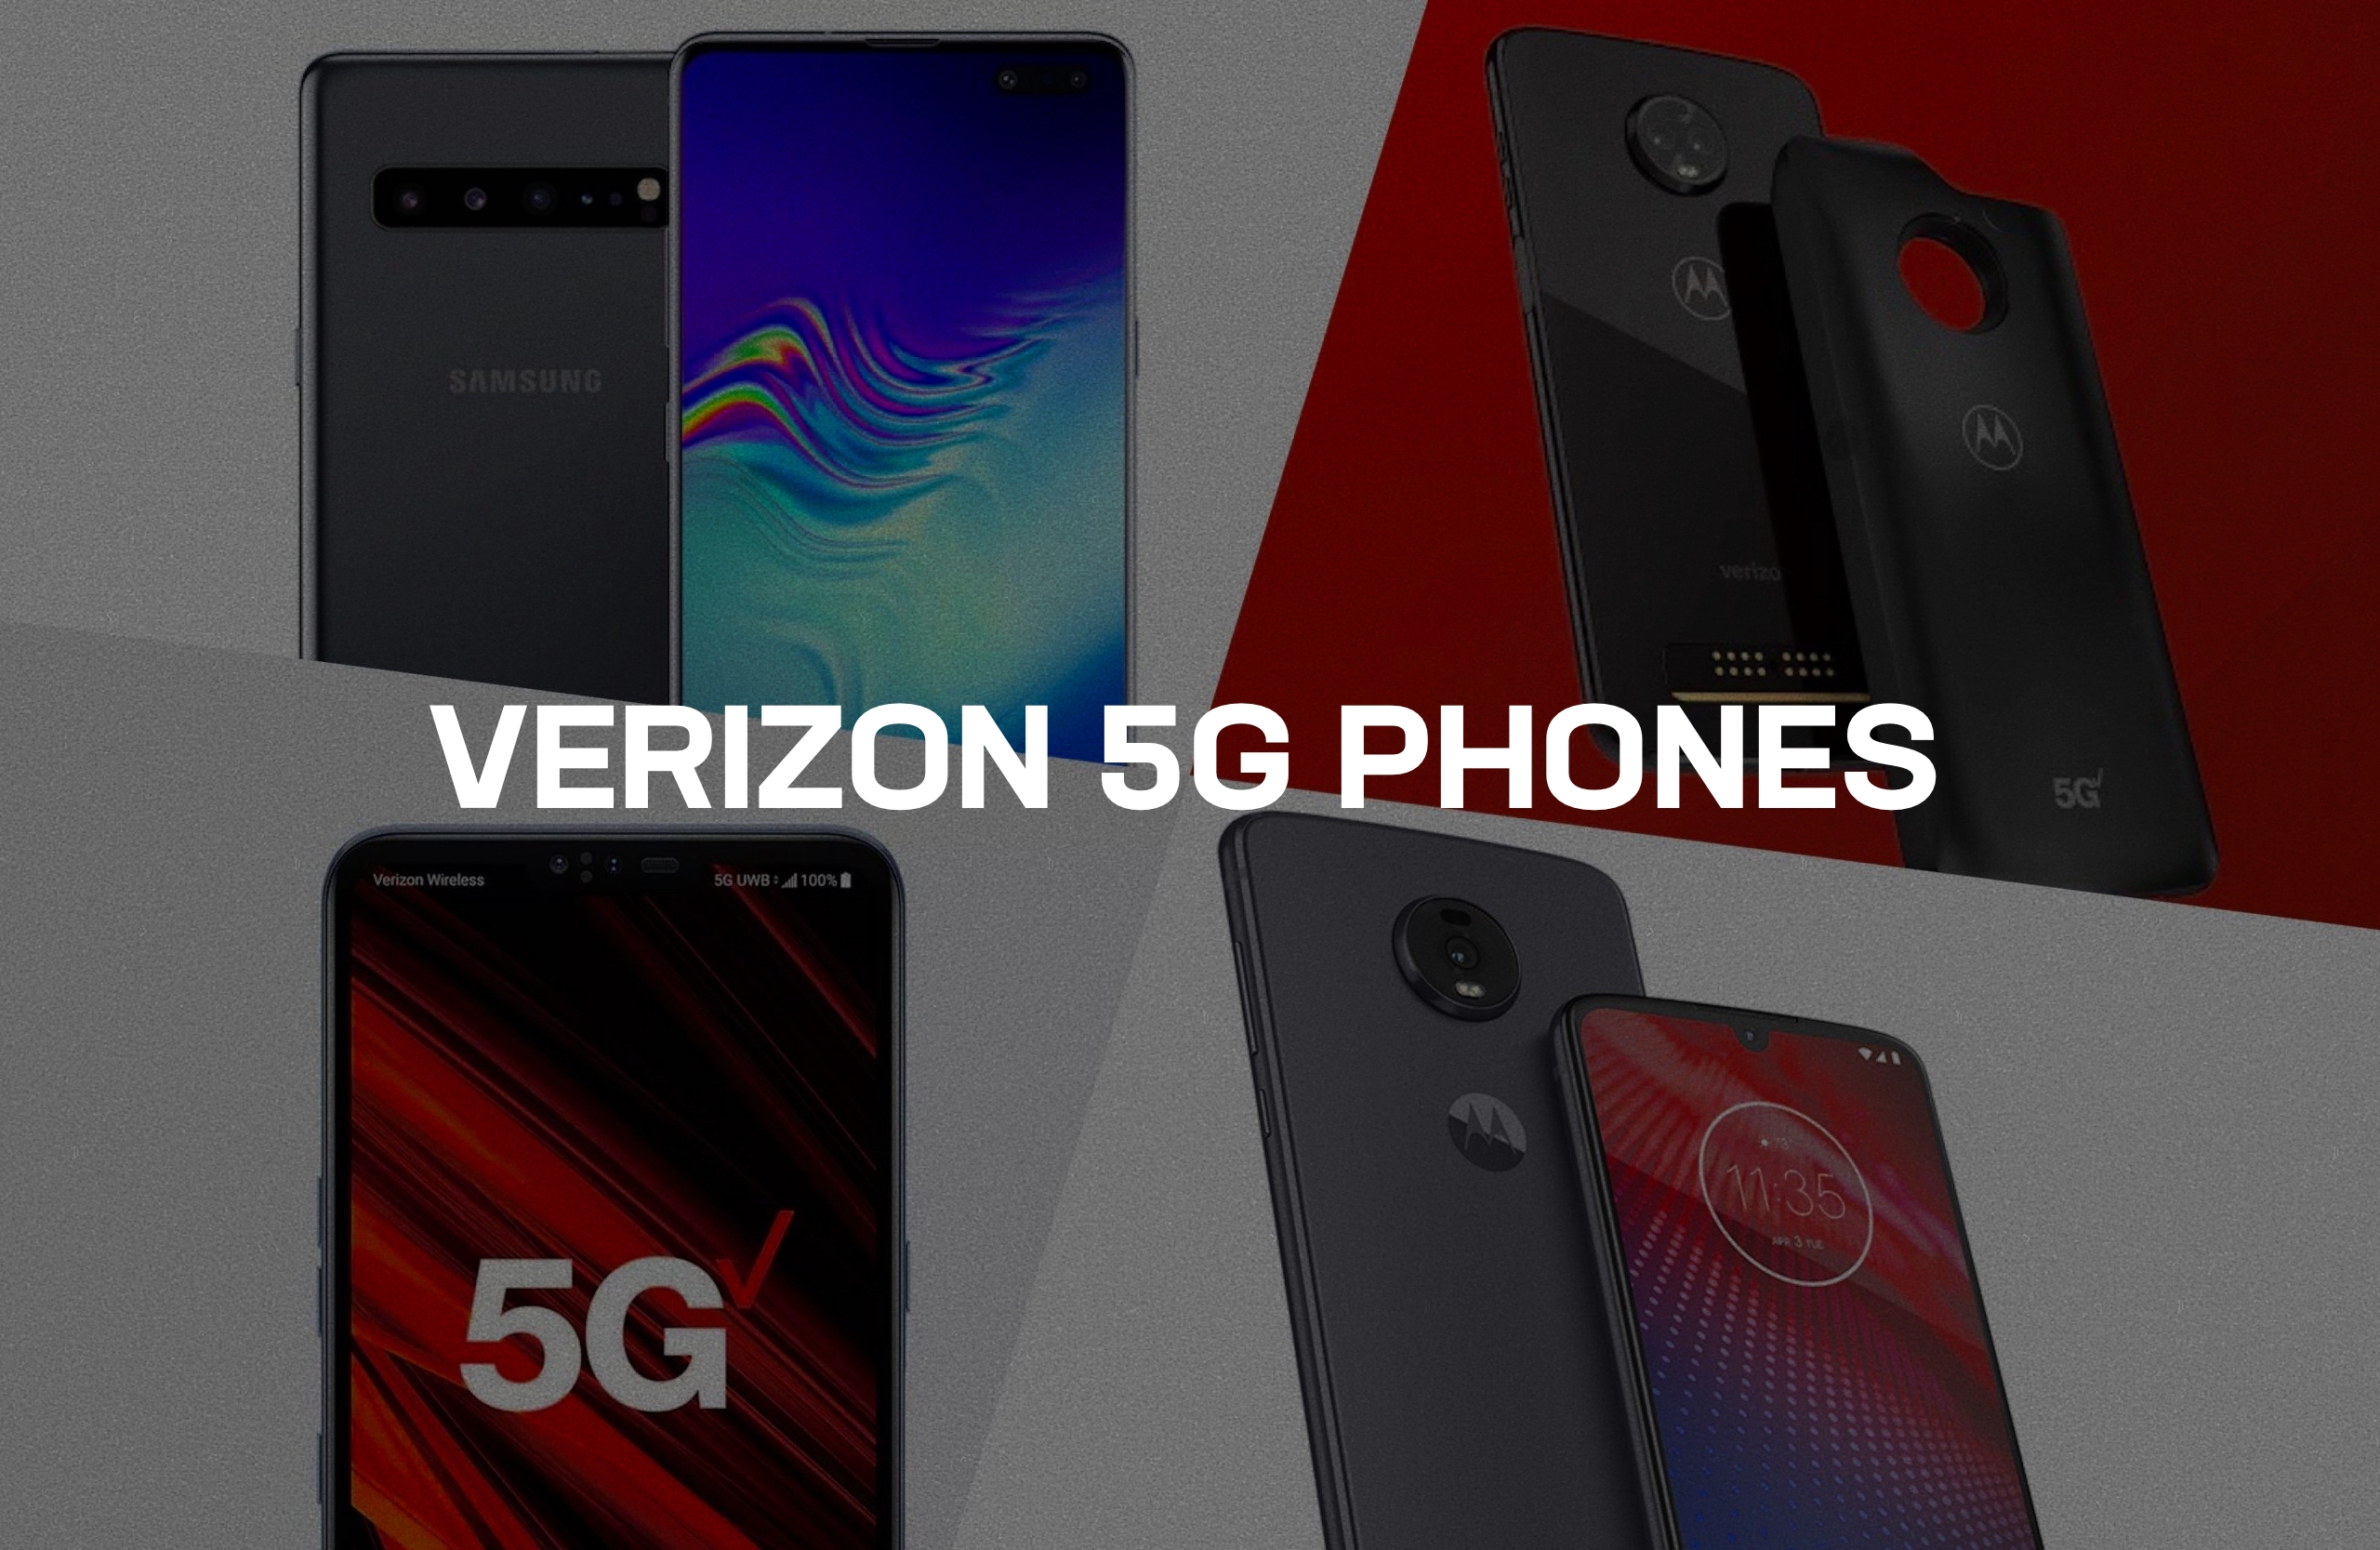 Best Verizon 5g Phones You Can Buy Right Now October 2020 Swappa Blog